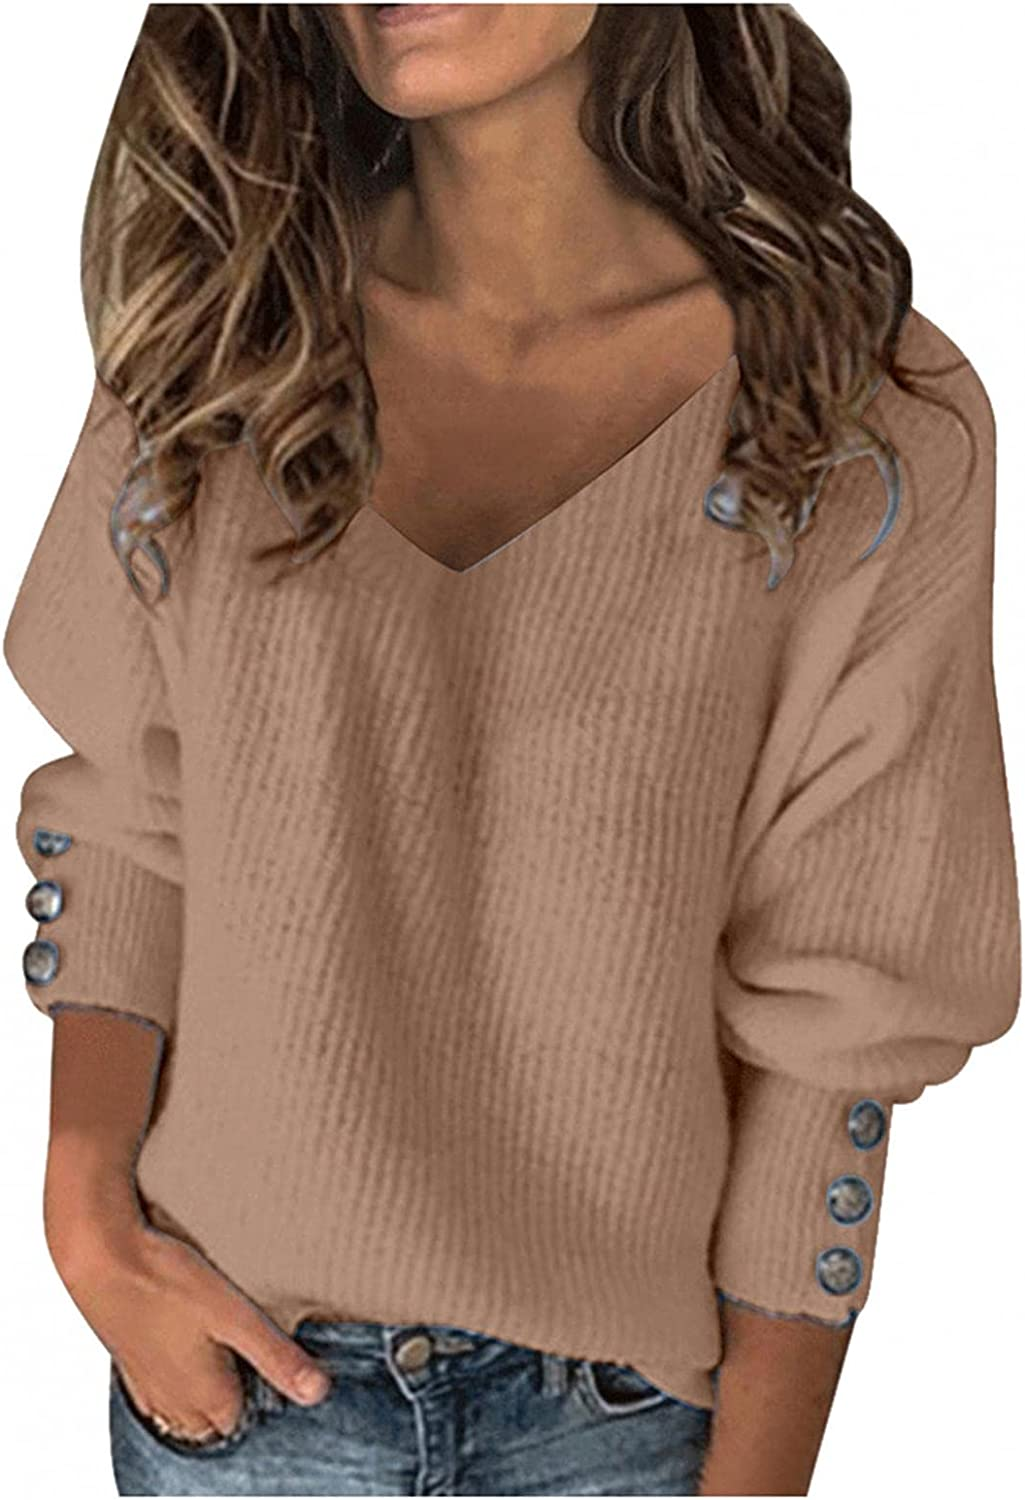 Pullover Sweaters for Women, Women's Fashion Long Sleeve Oversized Knitted Sweater V Neck Loose Pullover Jumper Tops